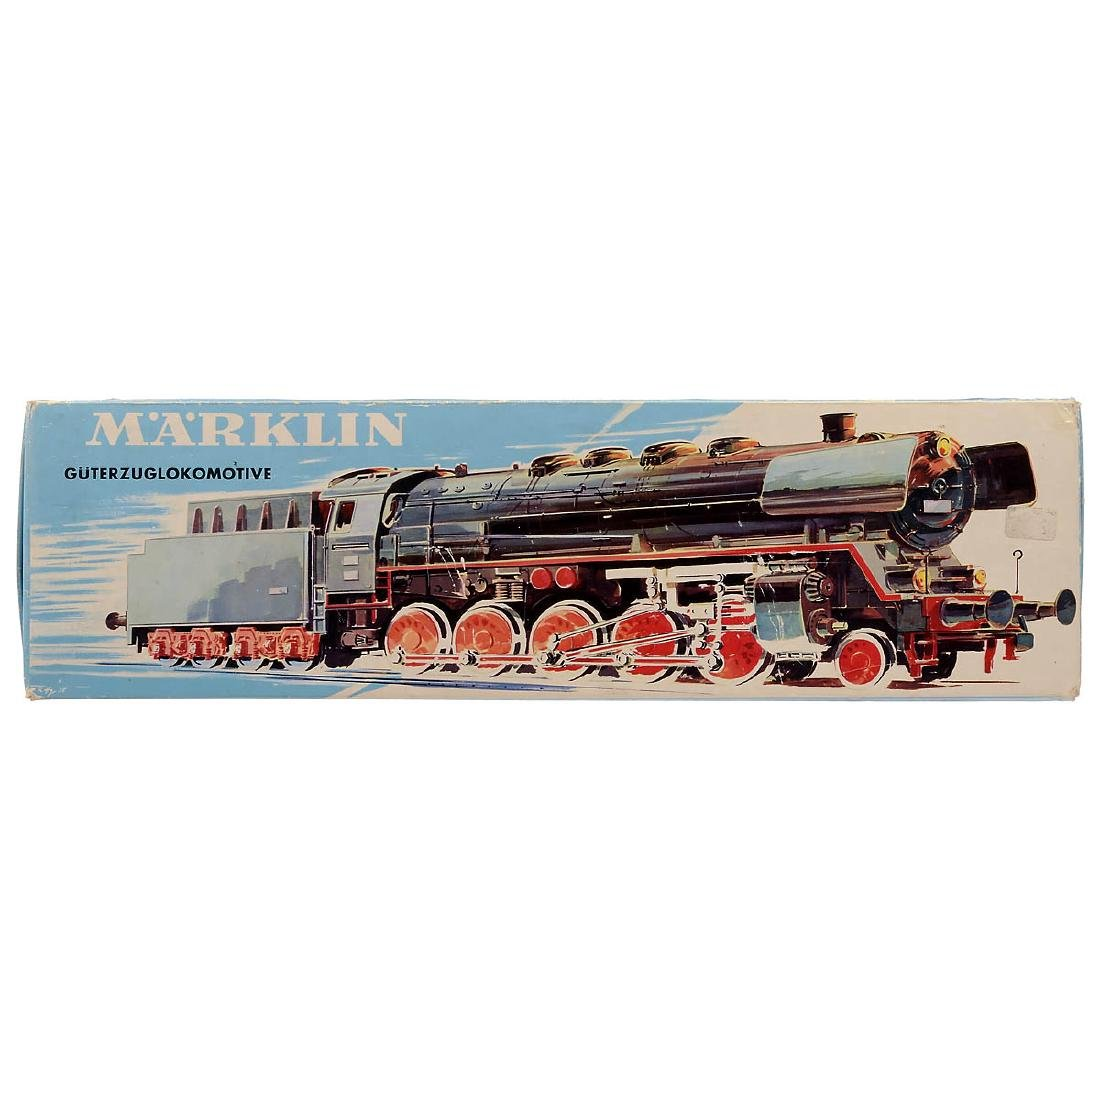 Märklin No. 3045 Danish Steam Locomotive, c. 1975 - 3